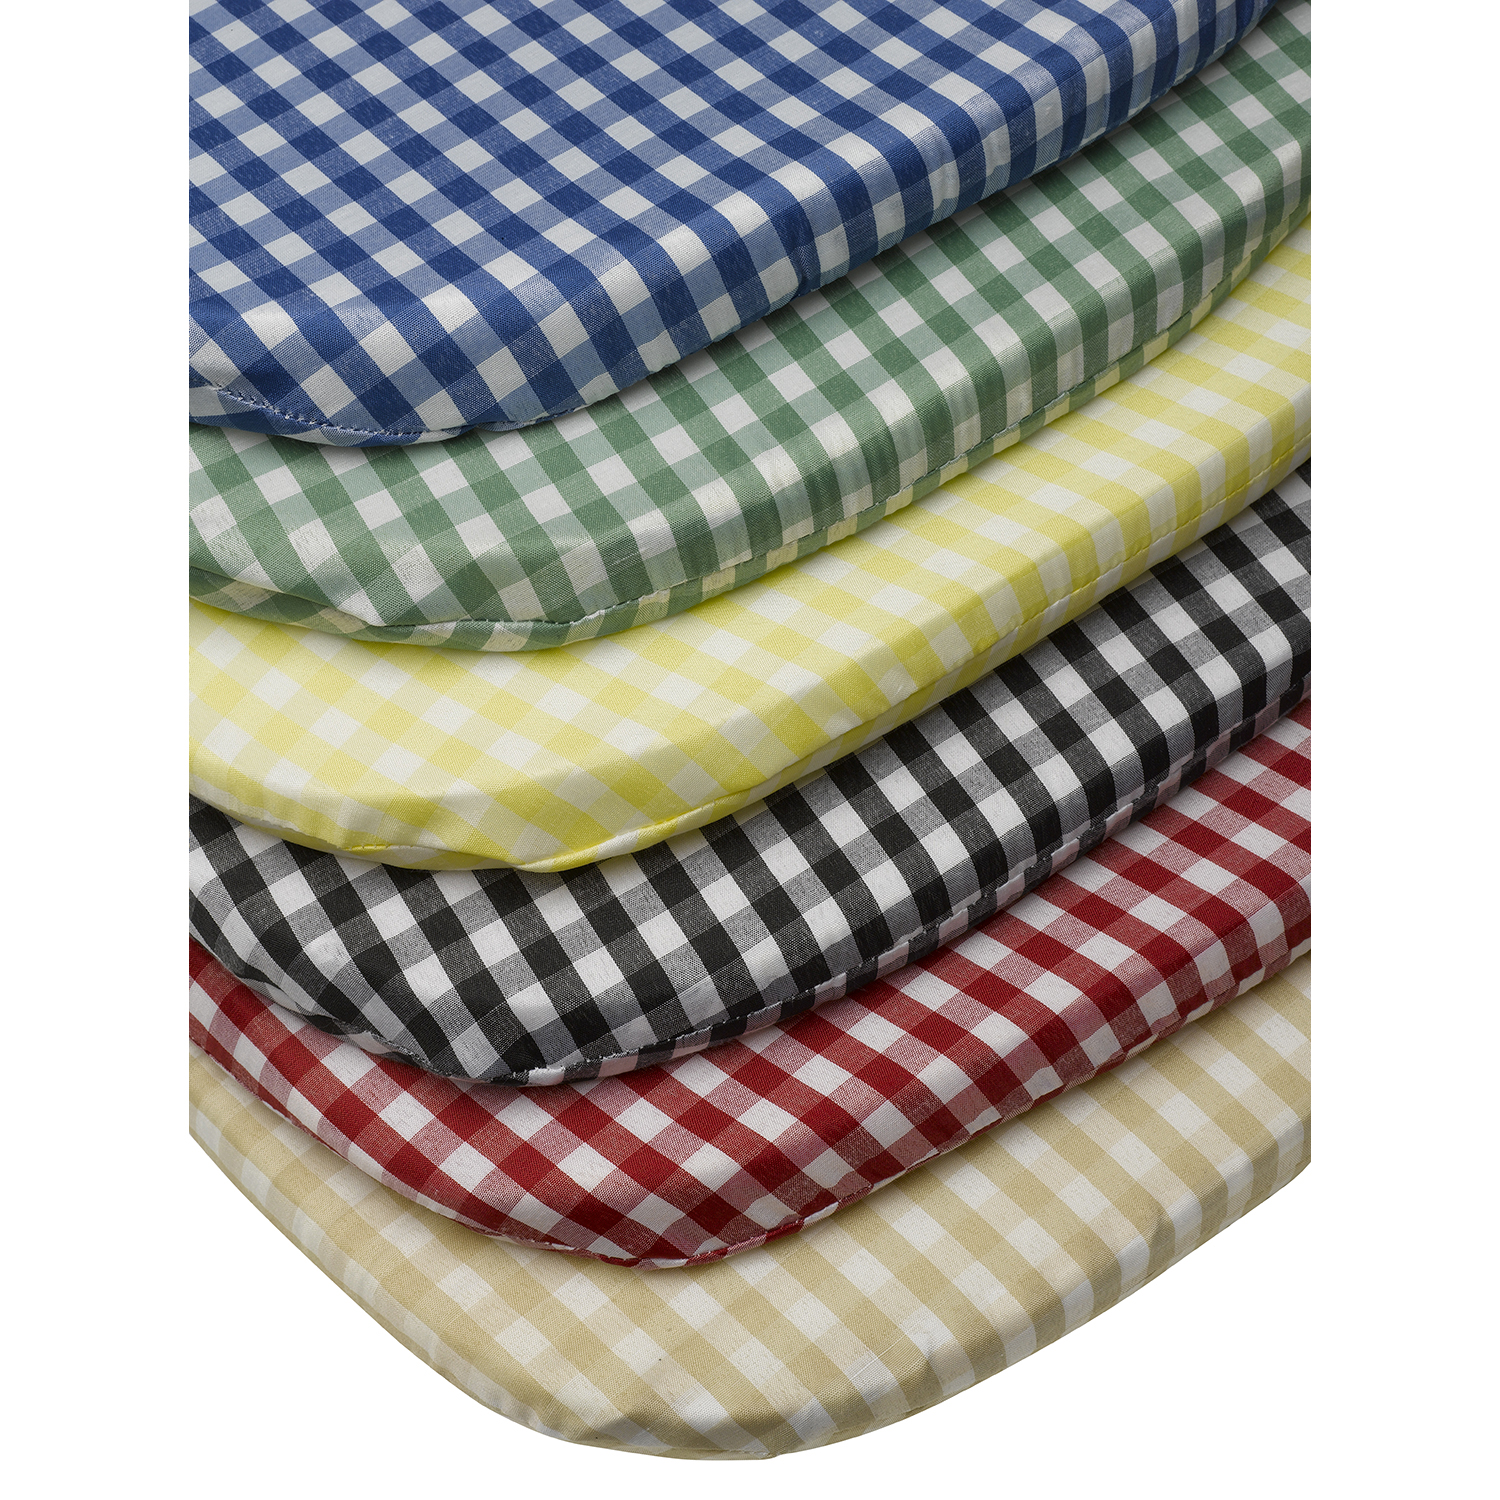 Details About Tie On Rounded Gingham Chair Seat Pad Cushion Outdoor Garden Dining Checked